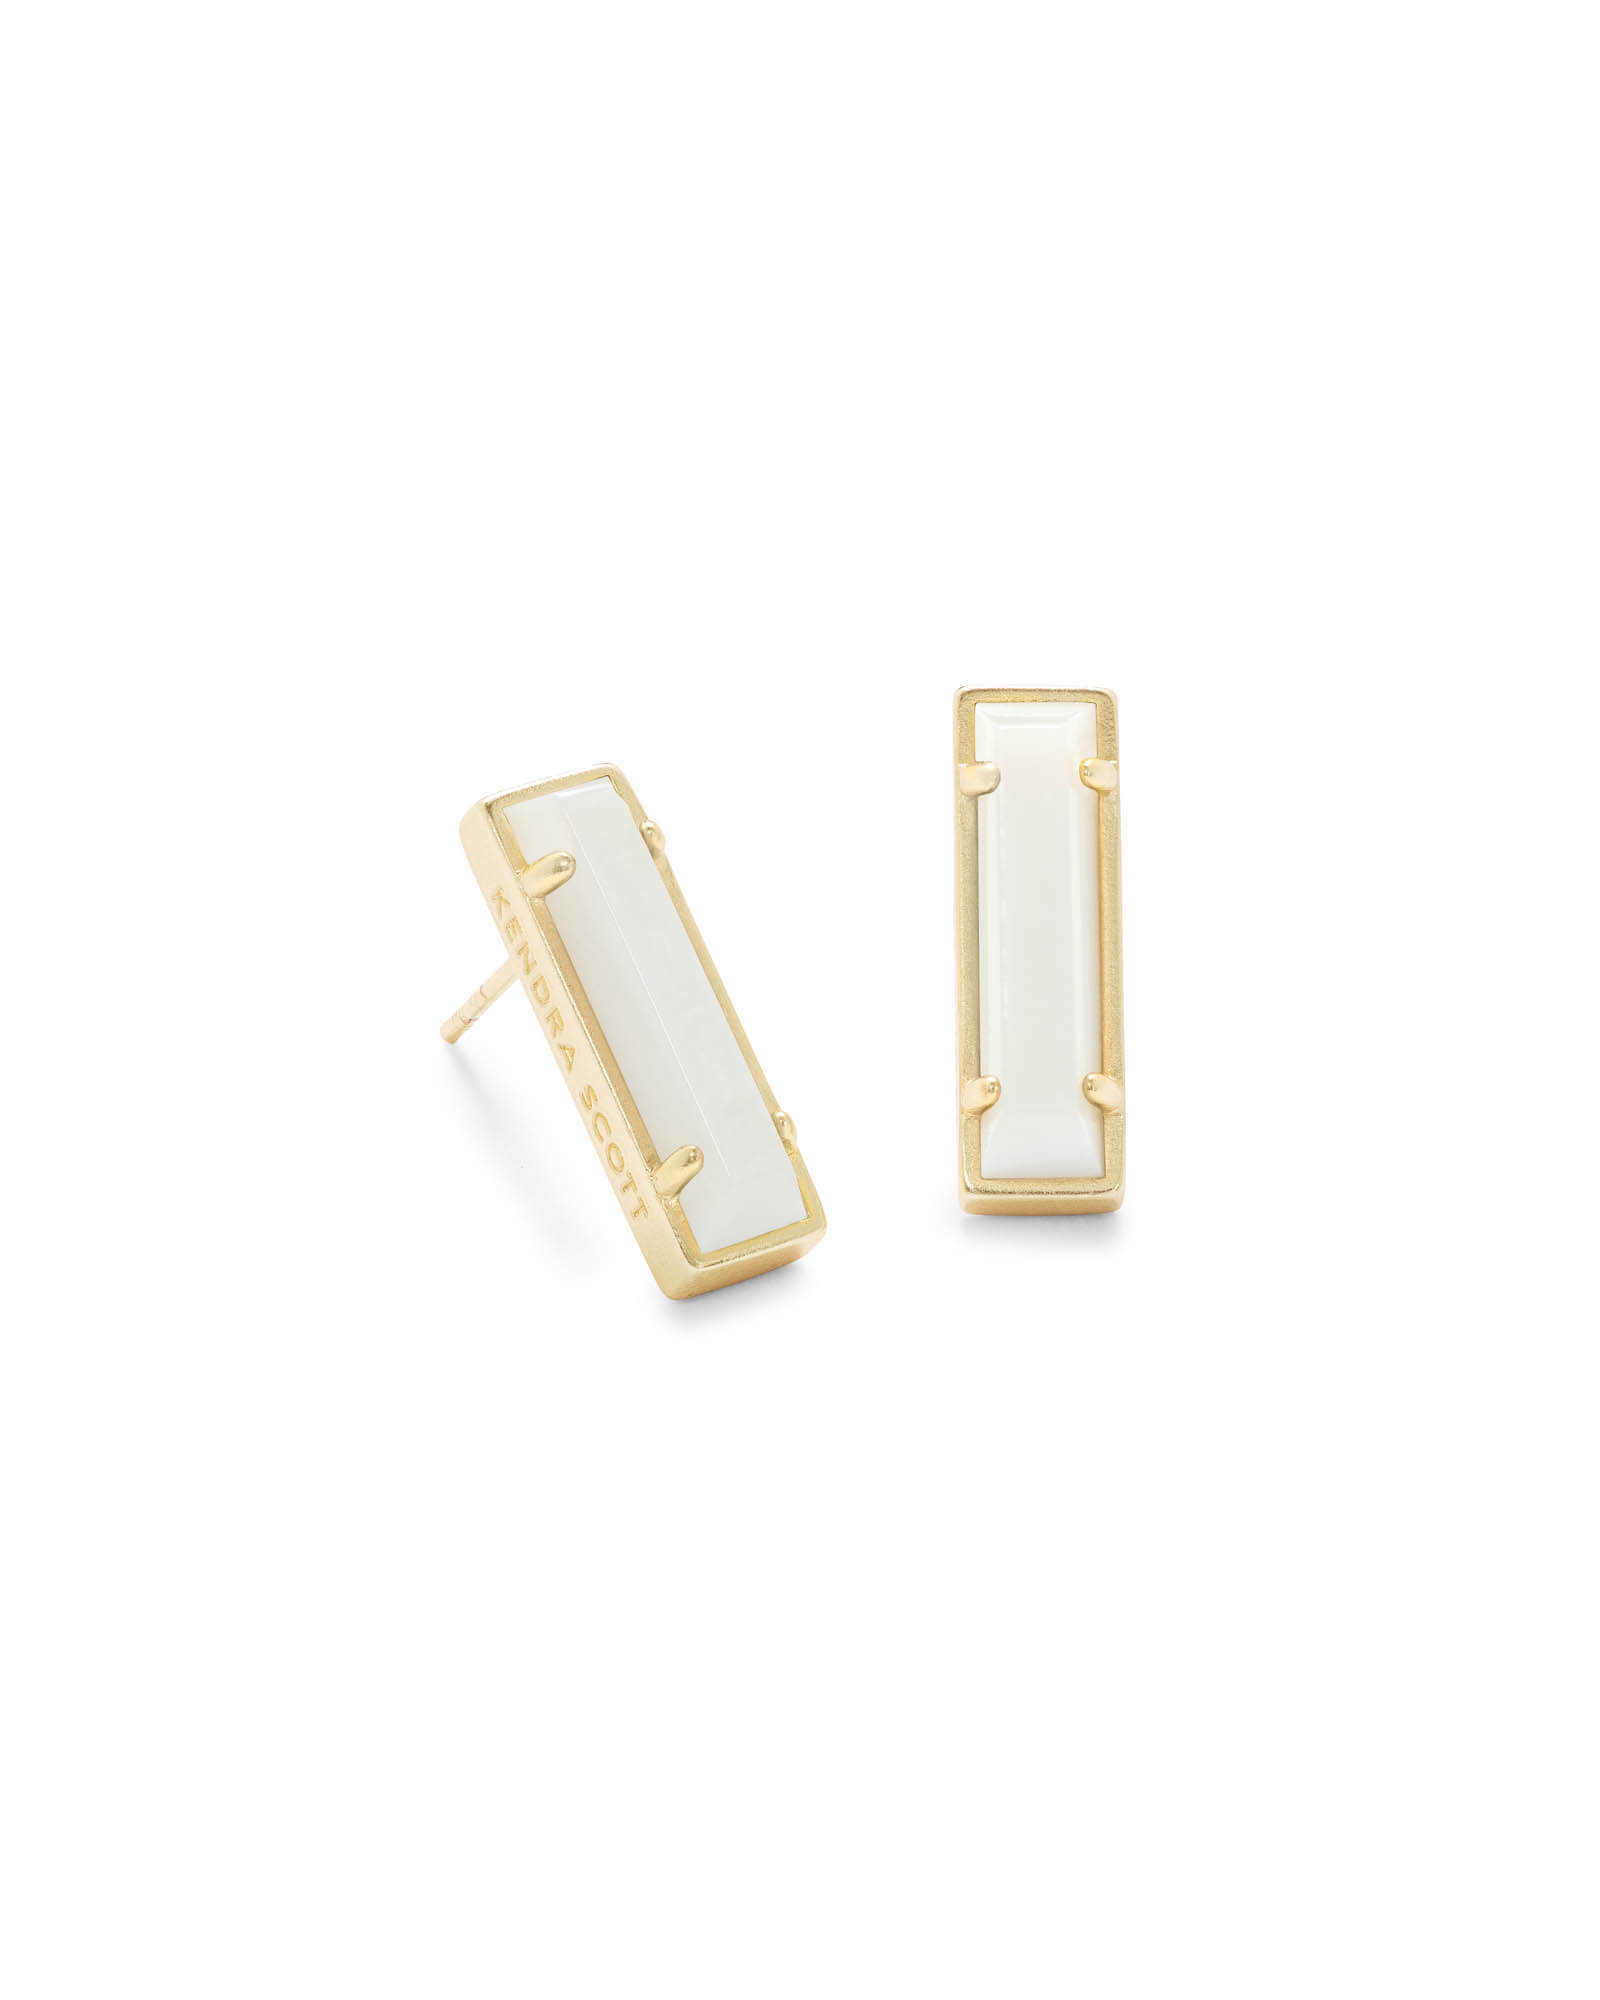 Lady Gold Stud Earrings in White Pearl